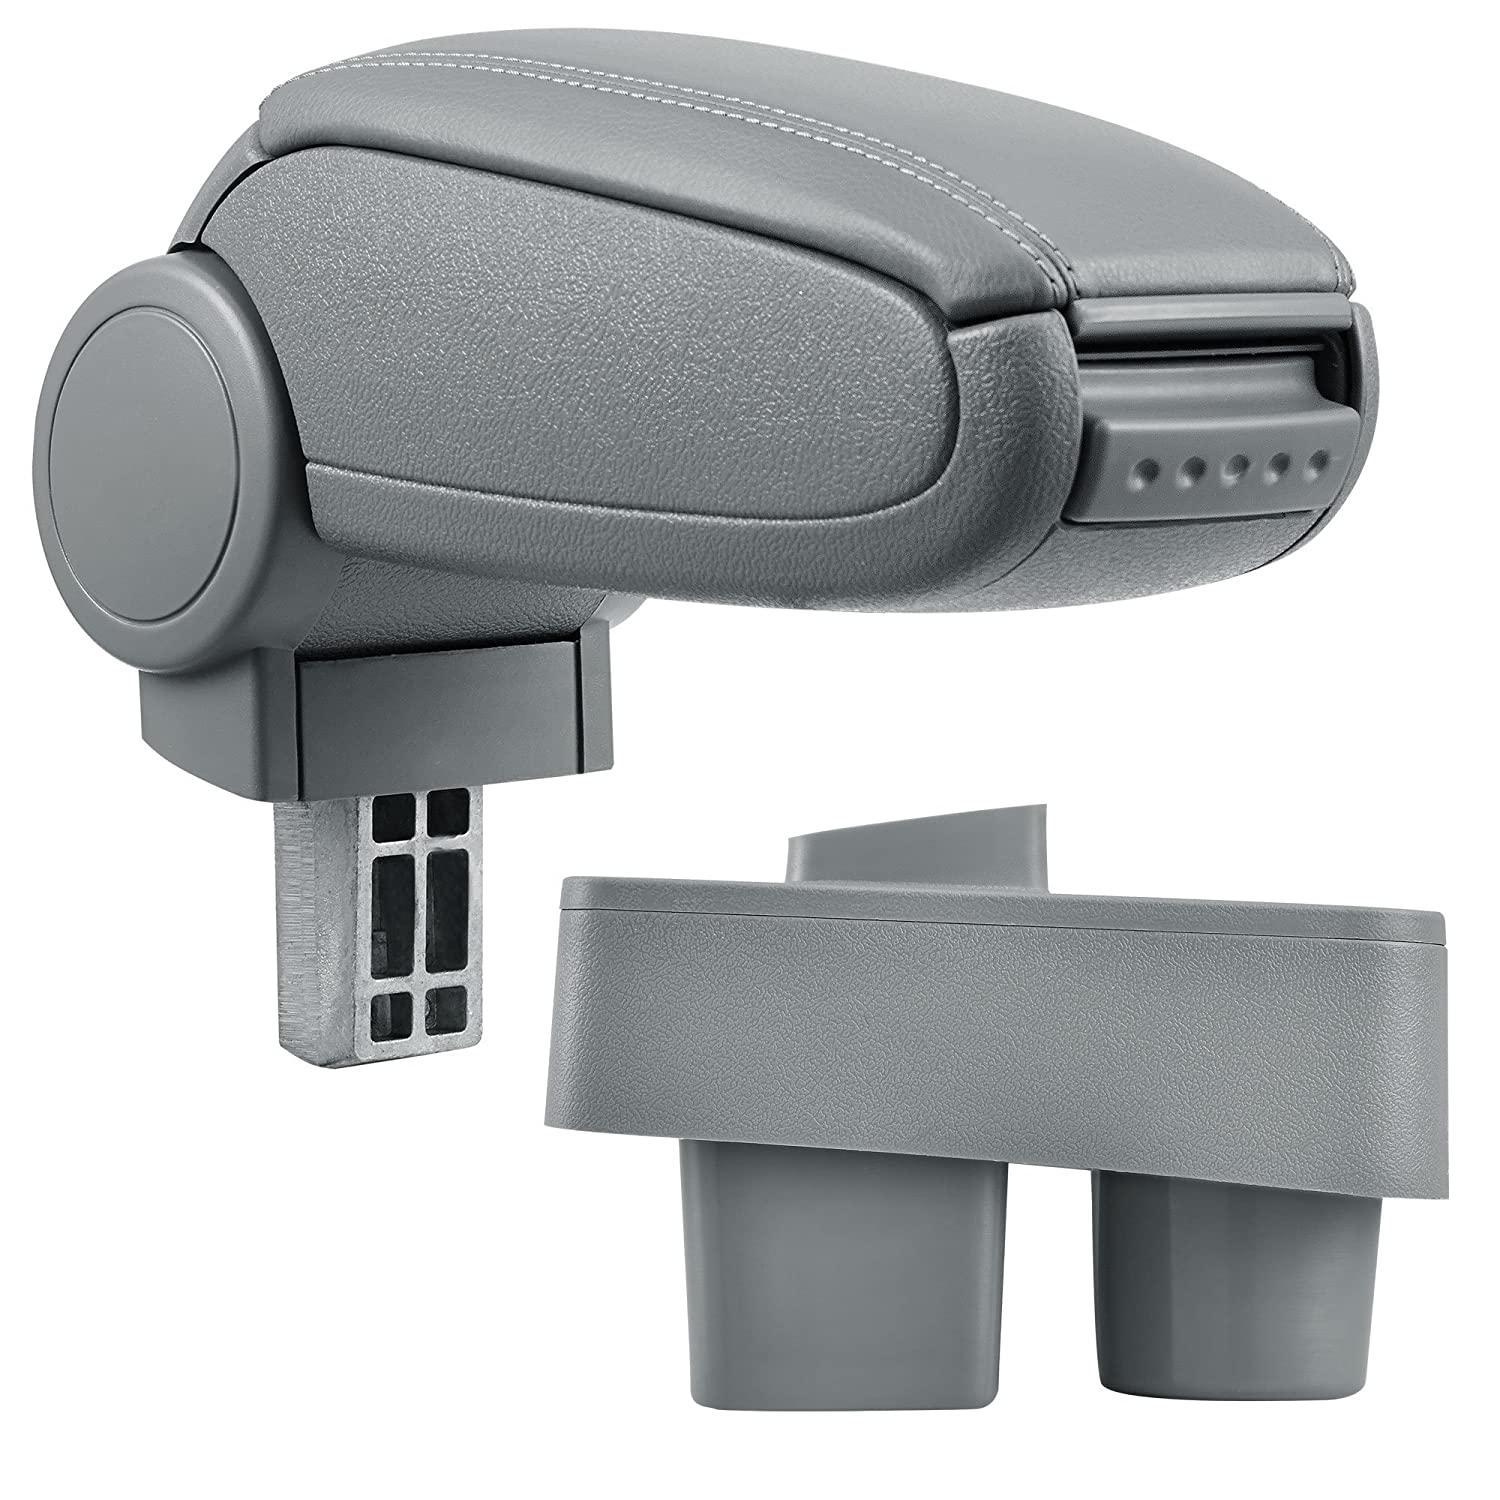 inkl Storage Box Centre Console Armrest Perfekt Fit textil cover // grey pro.tec